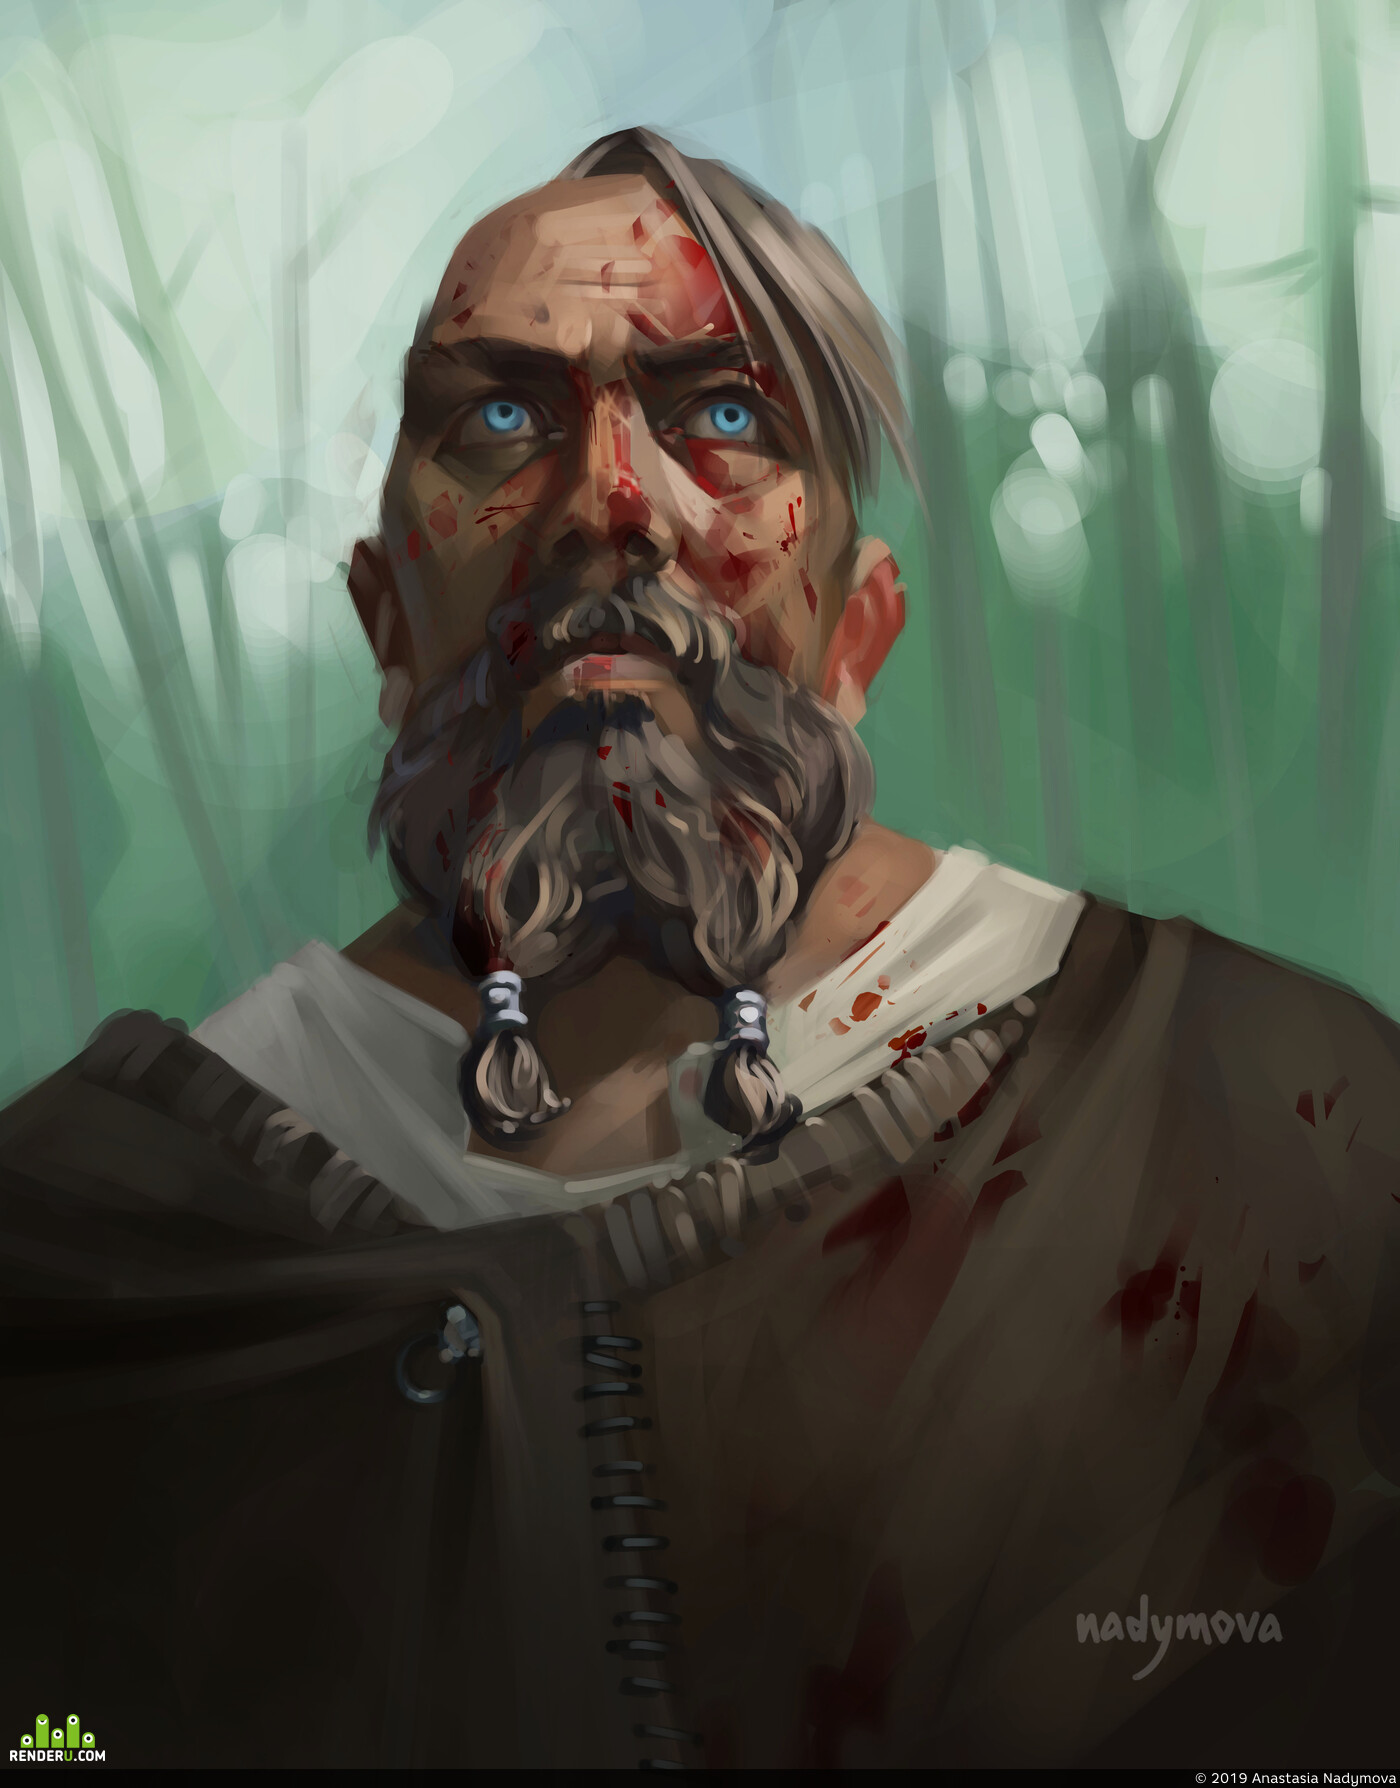 Photoshop, Adobe Photoshop, illustration, Character, 2D, Digital 2D, 2dart, 2Ddigital, viking